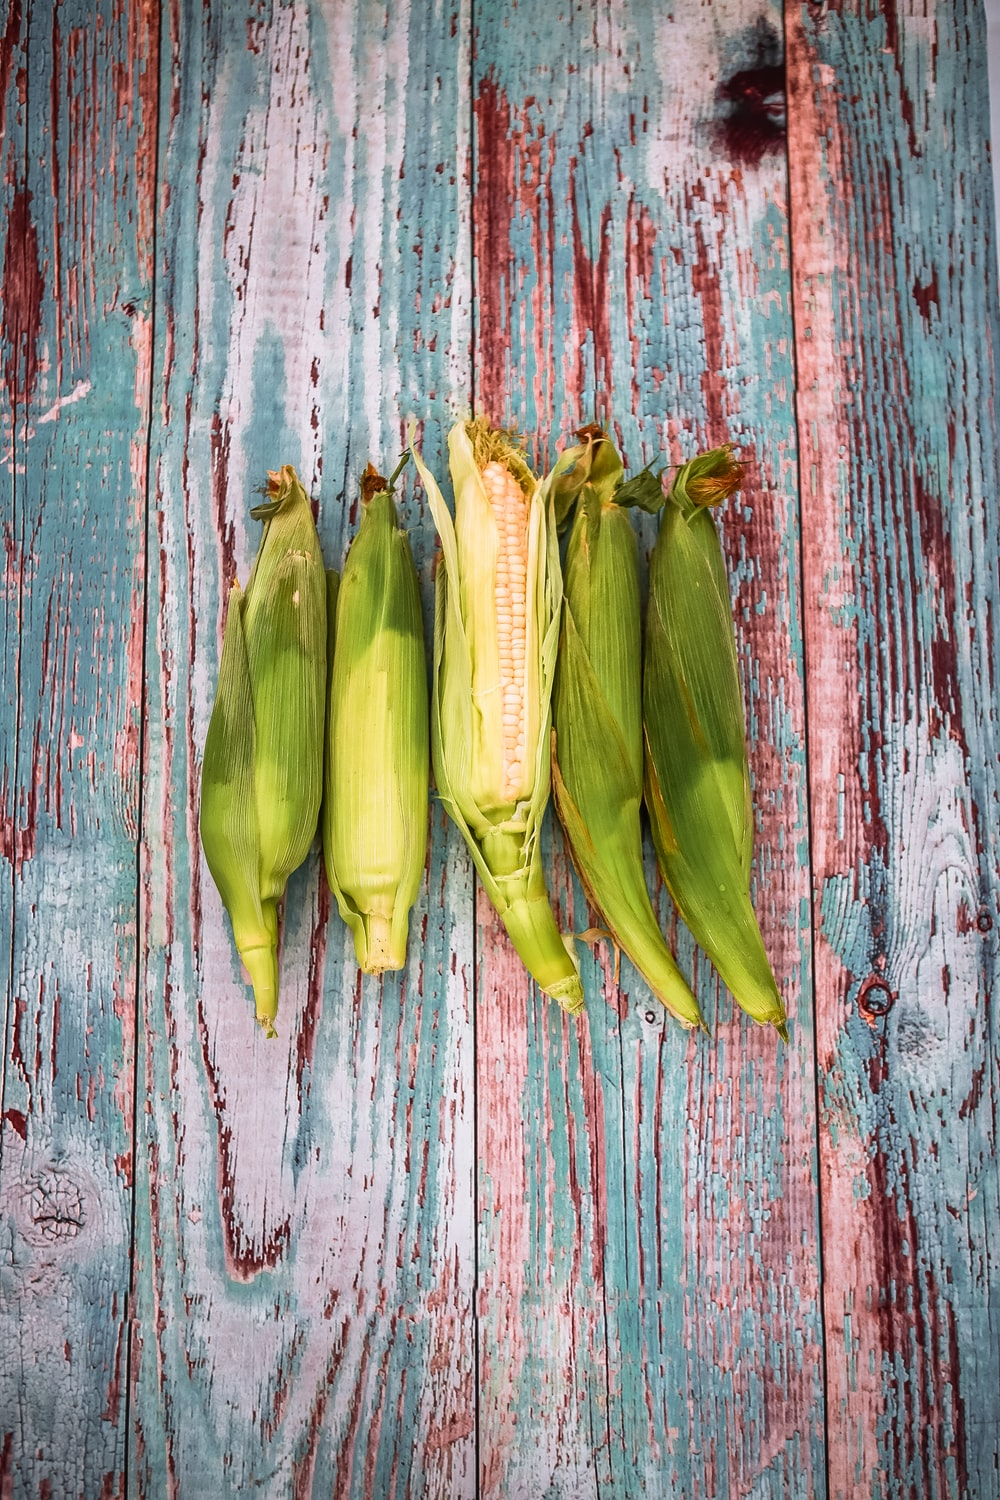 green corns on wooden surface